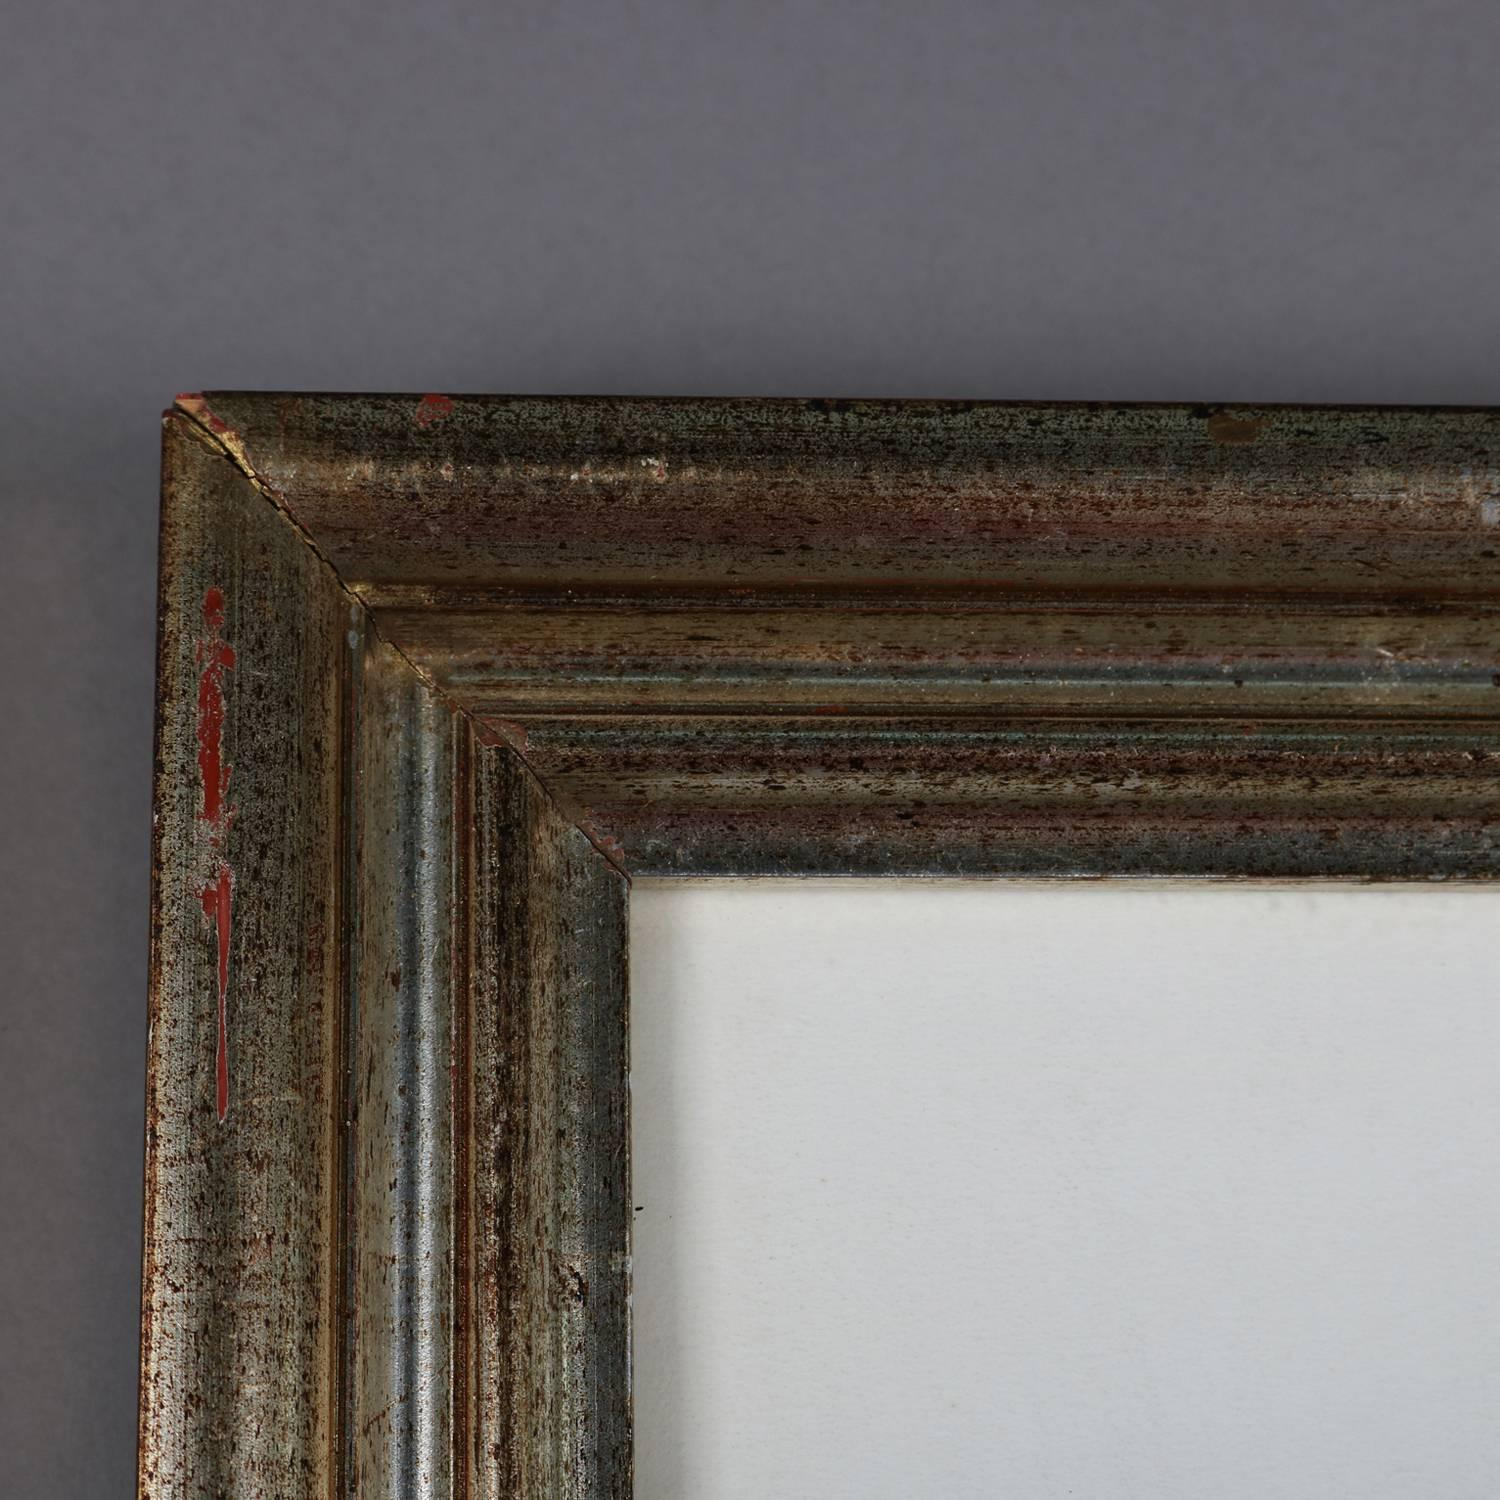 2 Edwardian Oak Picture Frames In Very Good Condition 27x 23 Cm High Resilience